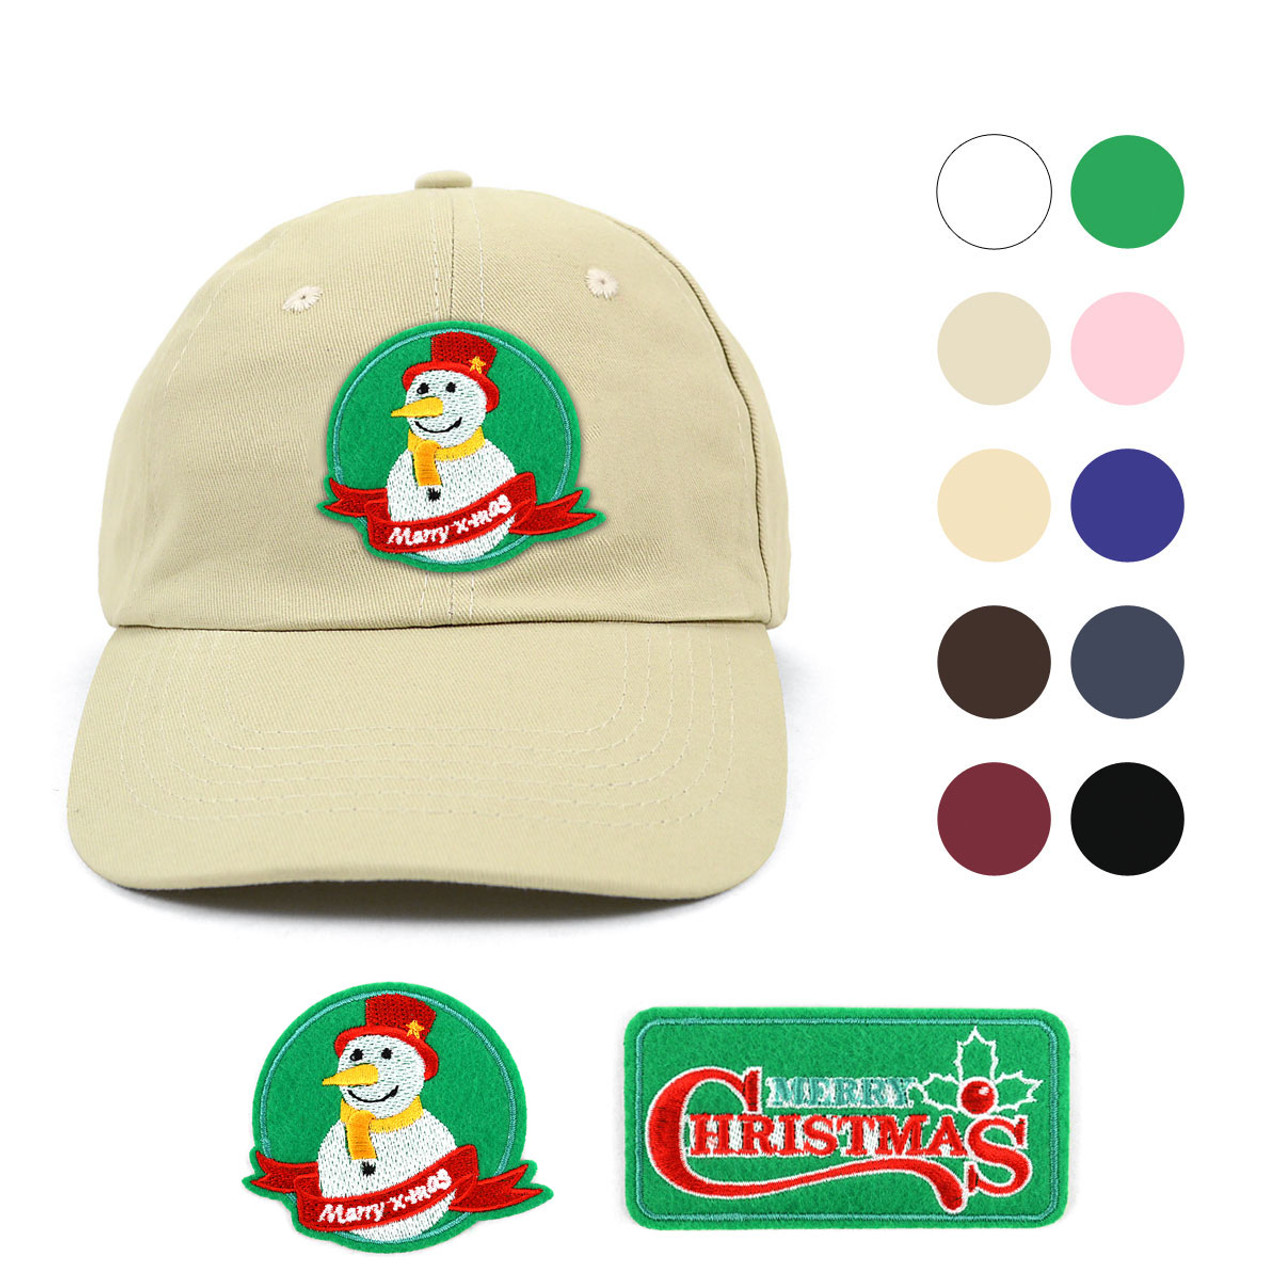 Winter Holiday Traditional Cotton Twill Embroidery Patch Blank Baseball Cap 8ae87214d946